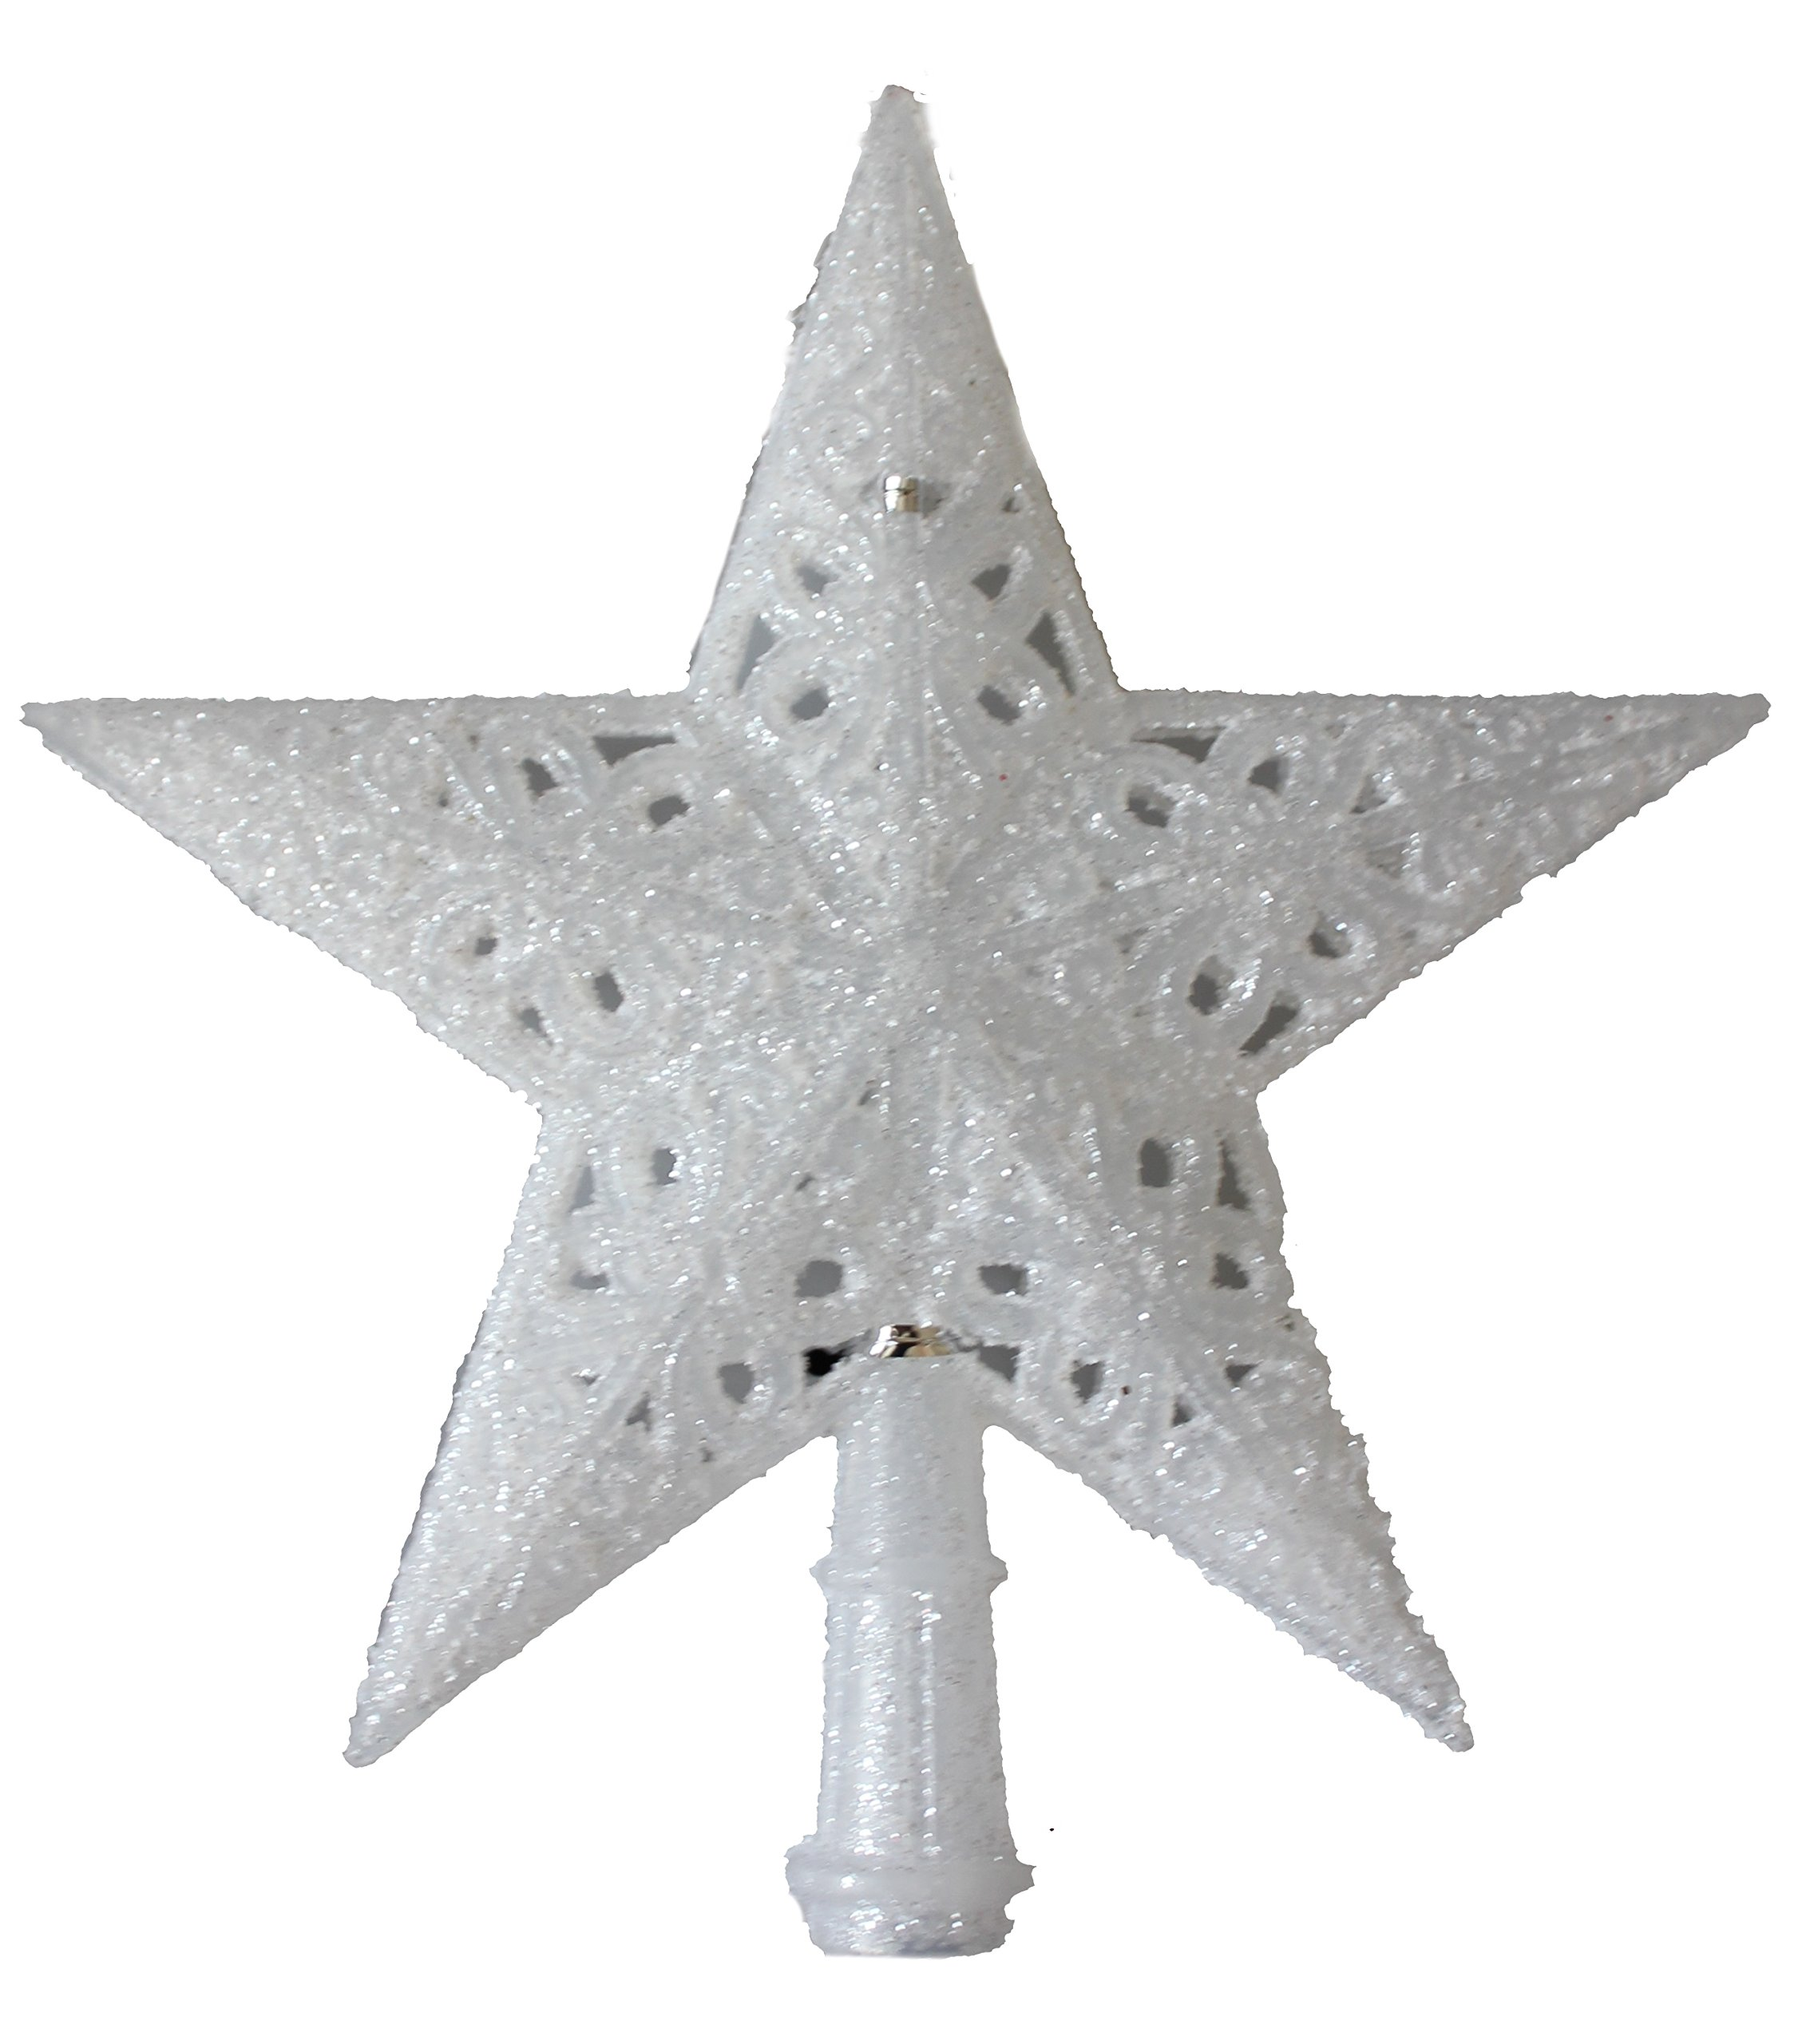 8.3'' H Glittered Finish Star Tree Topper Christmas Tree Decoration White Frosted